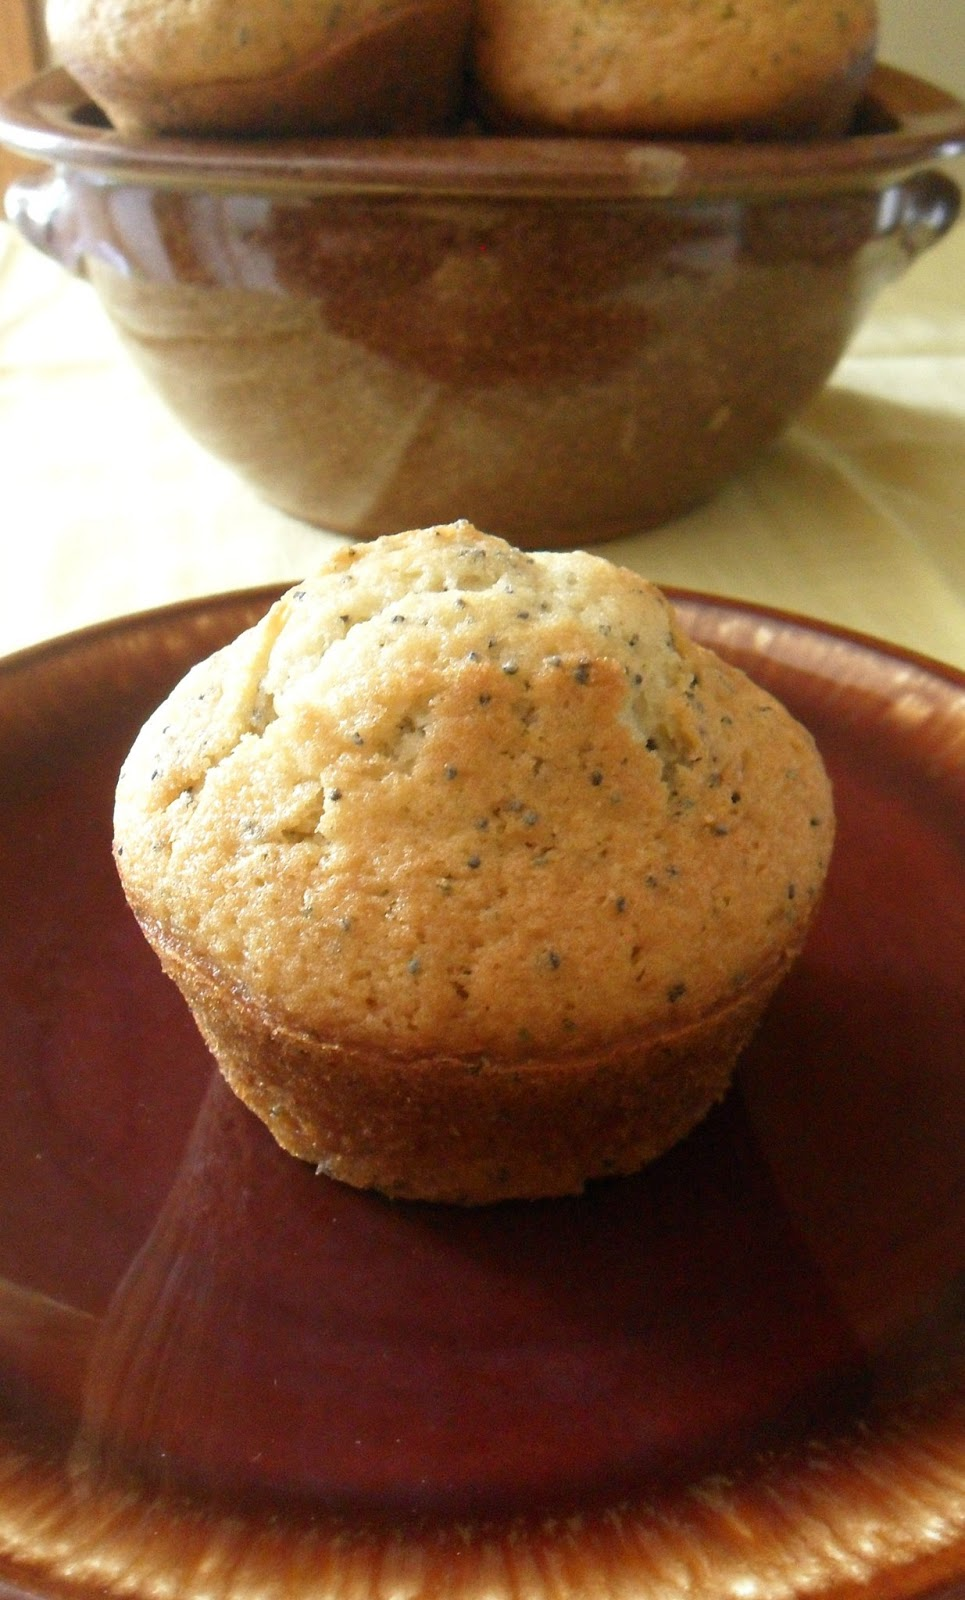 Lemon Poppy Seed Muffins (adapted from Food.com )